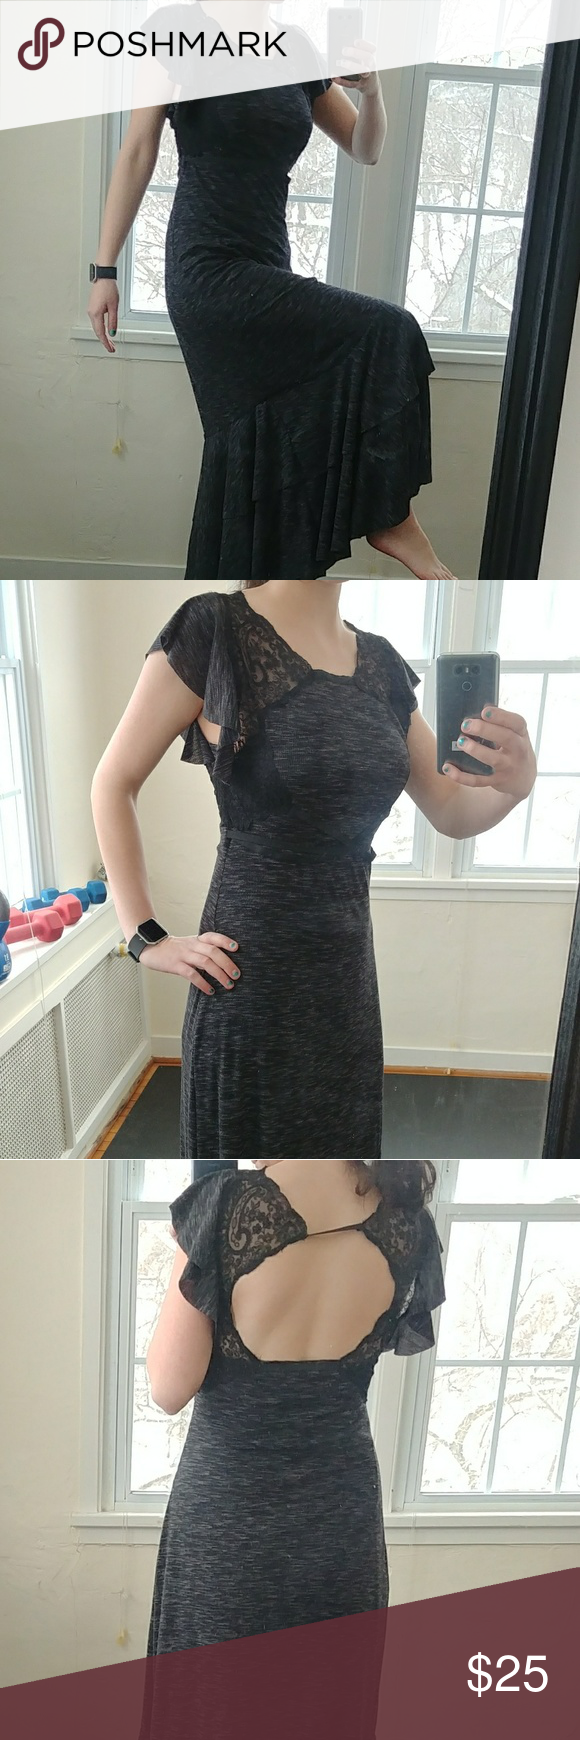 Long dress with cutout back floor length dresses confused and